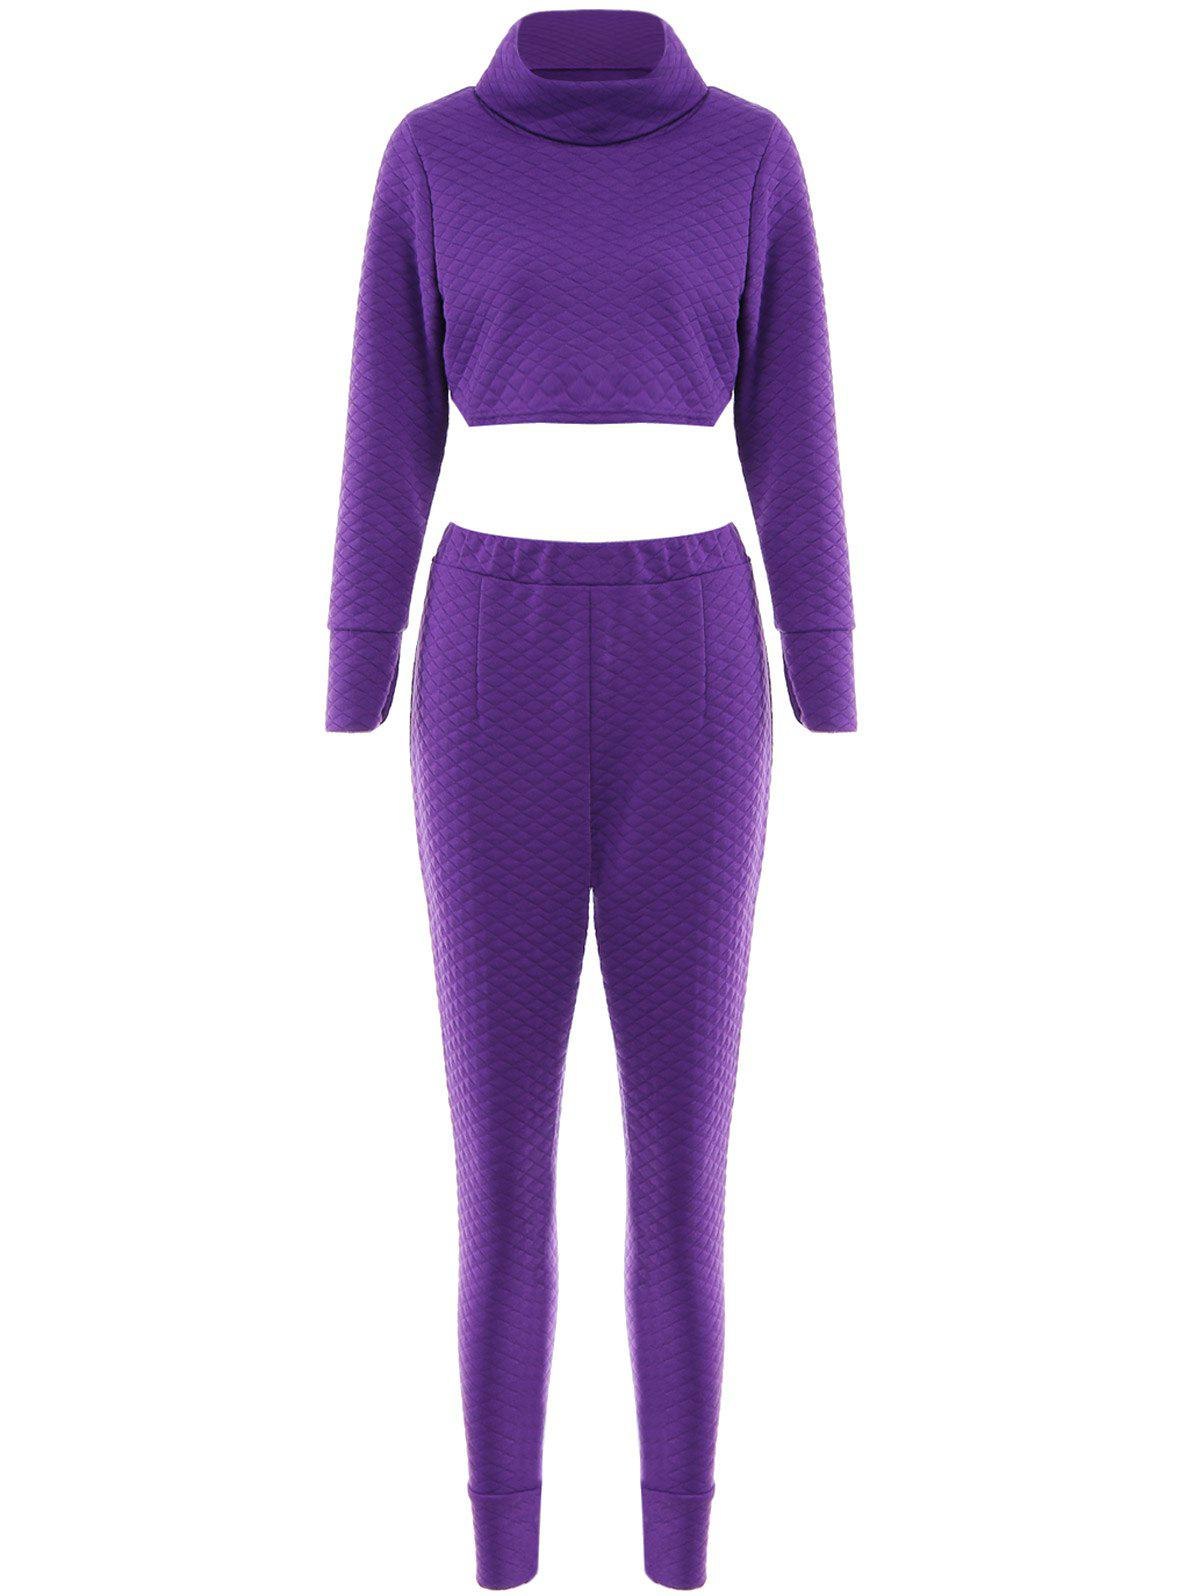 Stylish Women's Turtkeneck Long Sleeve Solid Color Crop Top and Pants Suit - PURPLE M